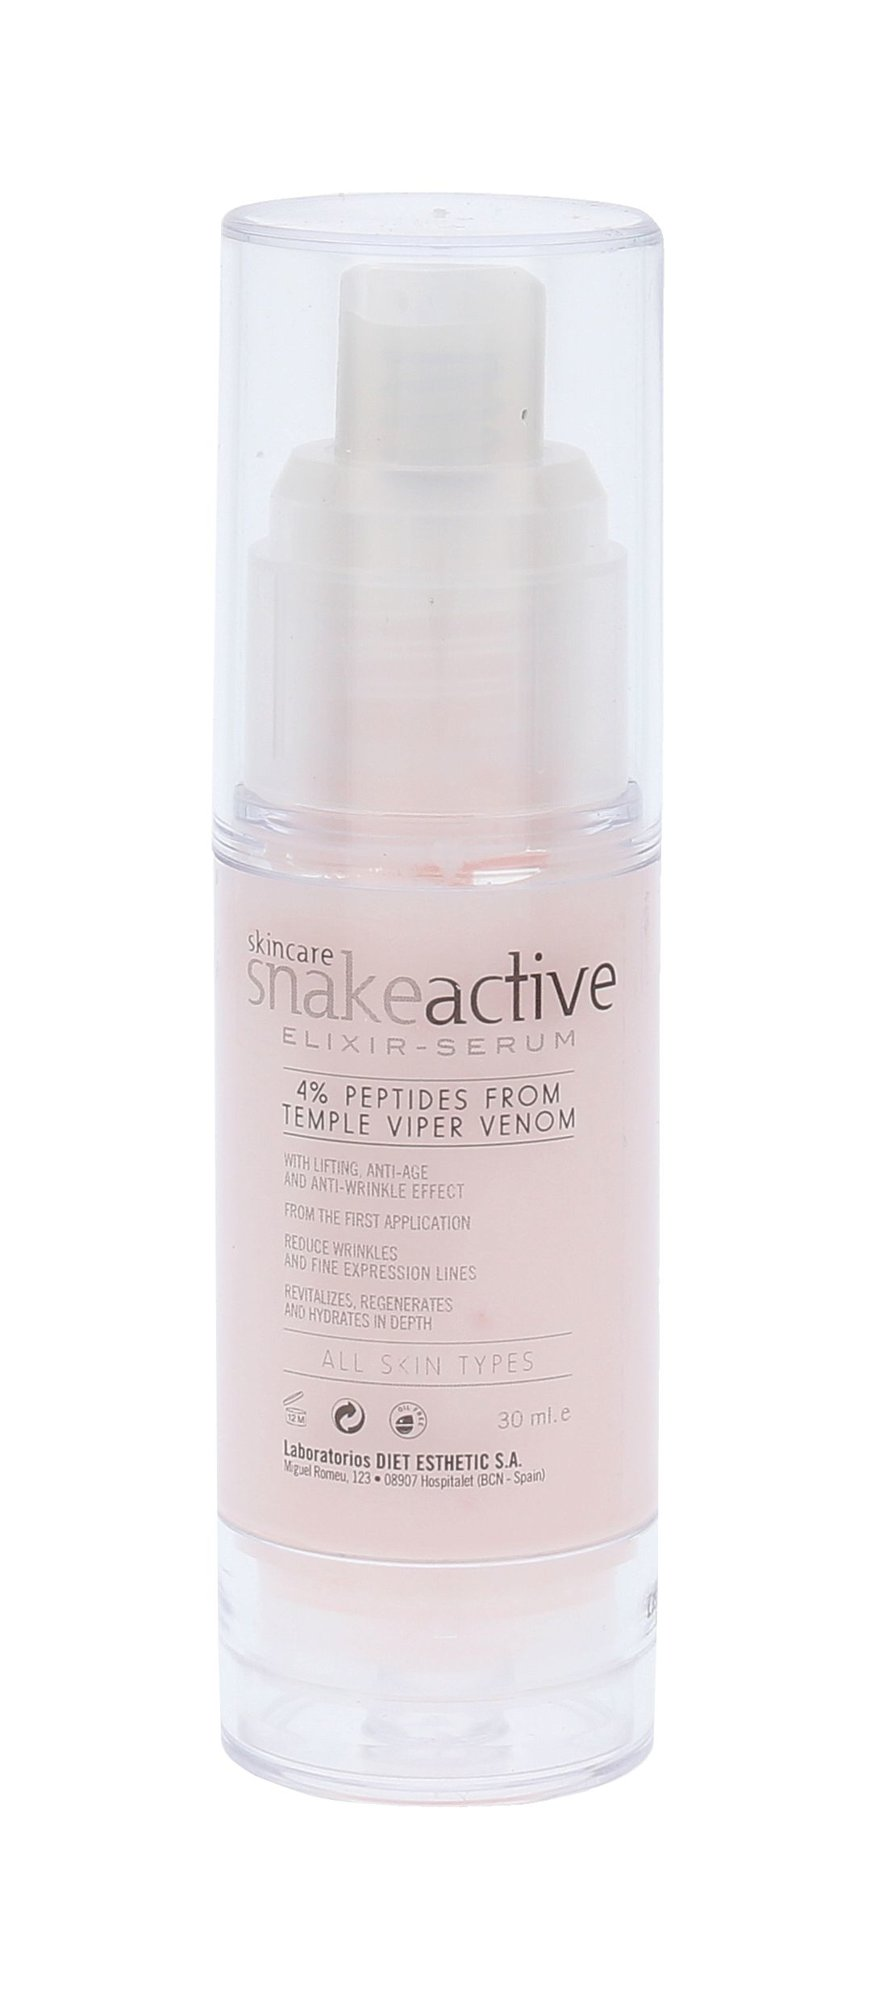 Diet Esthetic Snakeactive  Pleťové sérum, W, 30 ml